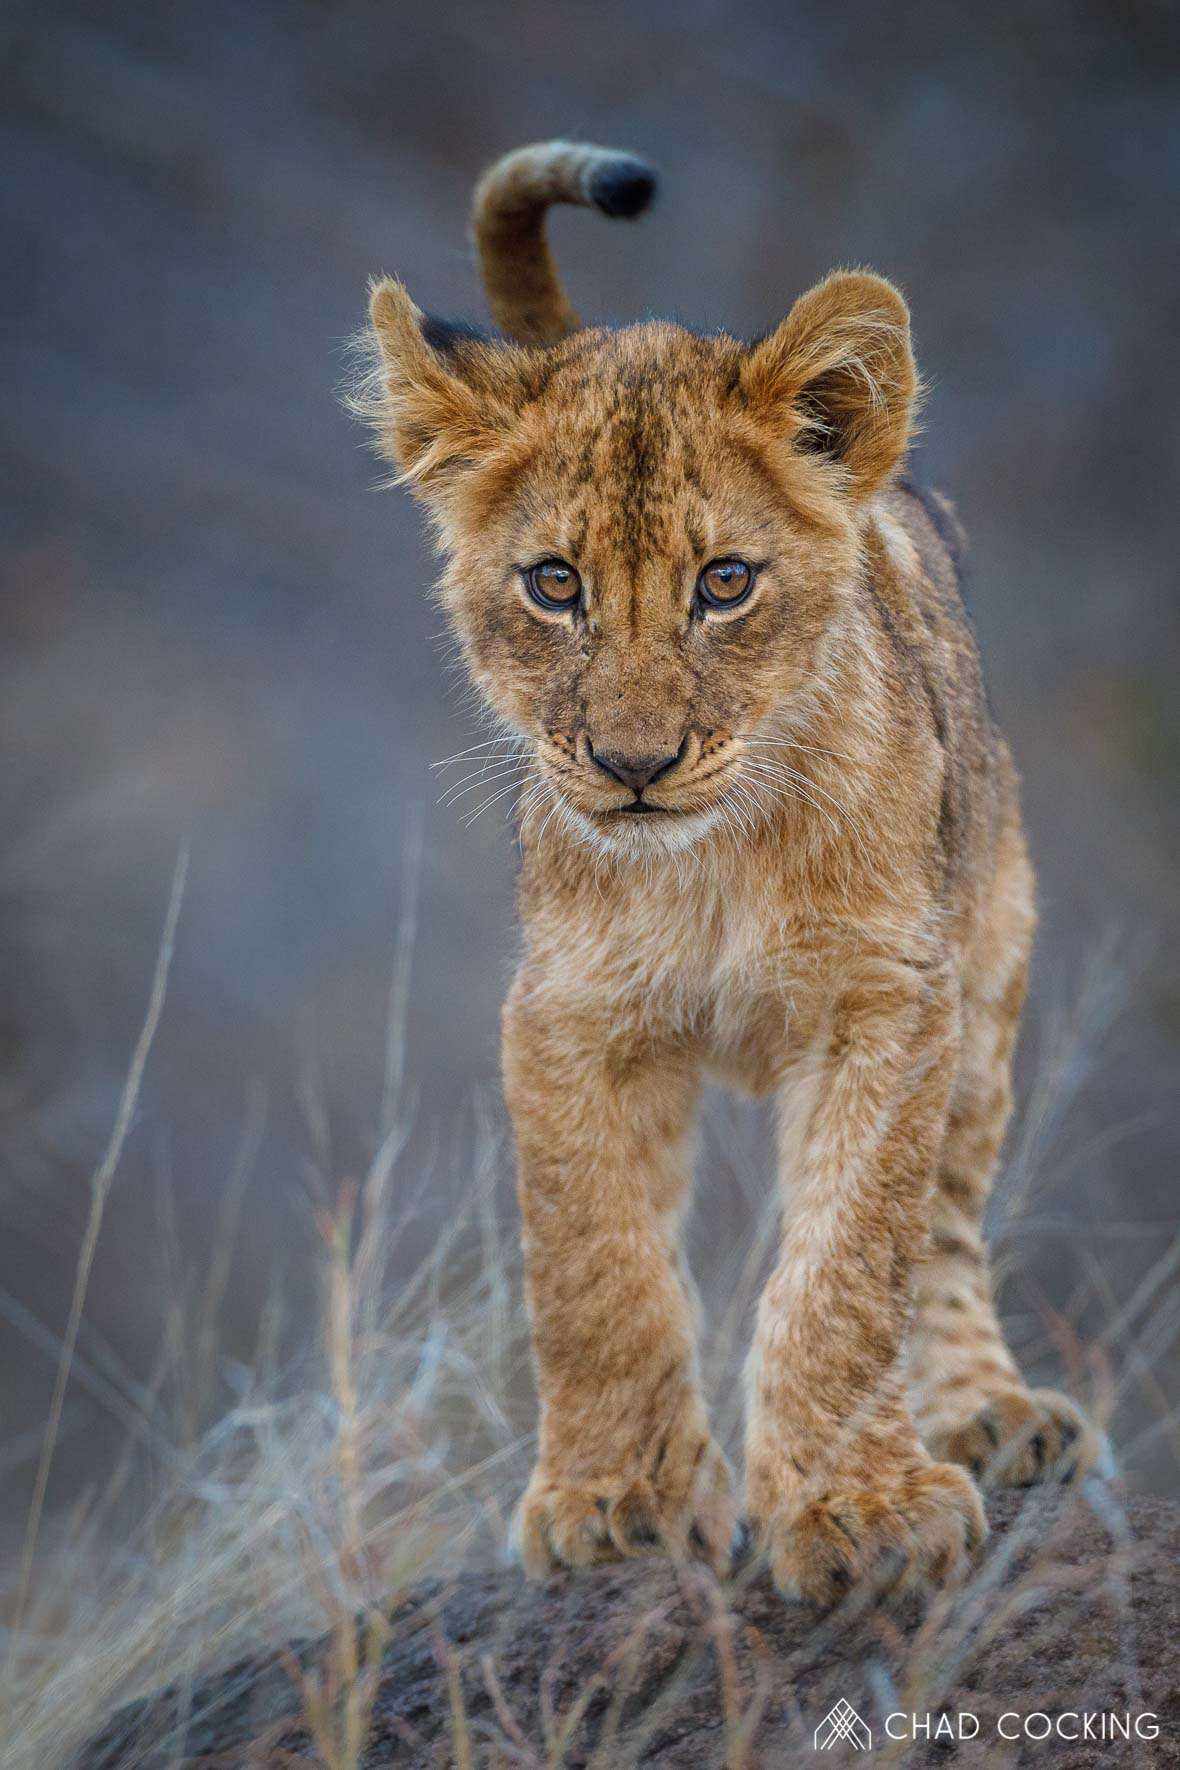 Photo credit: Chad Cocking - Cute little baby lion cub balancing on a termite mound at Tanda Tula in the Timbavati Game Reserve, South Africa.